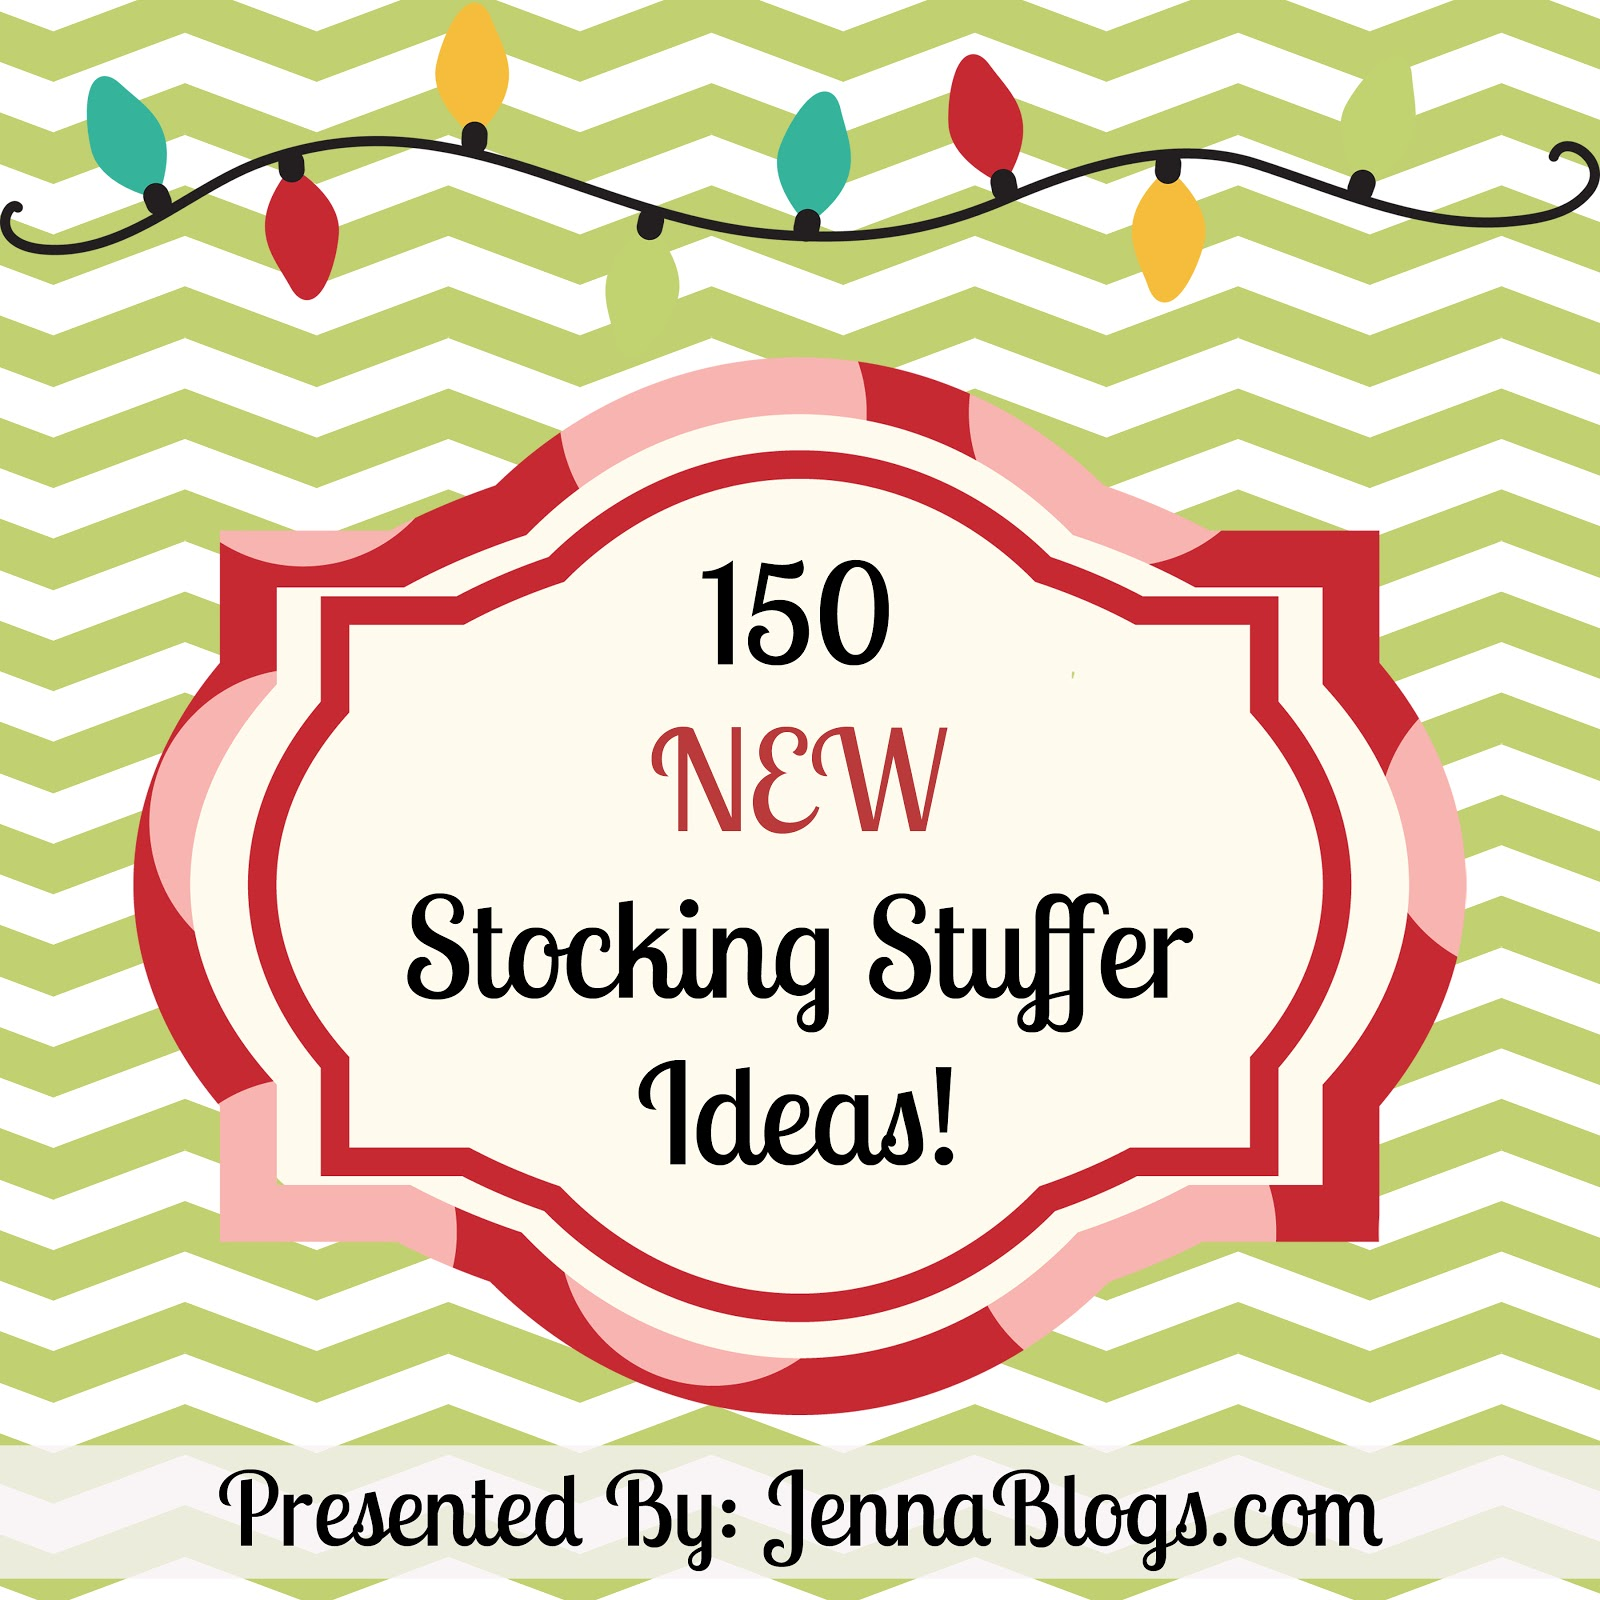 Jenna Blogs: 150 NEW Stocking Stuffer Ideas for Everyone!